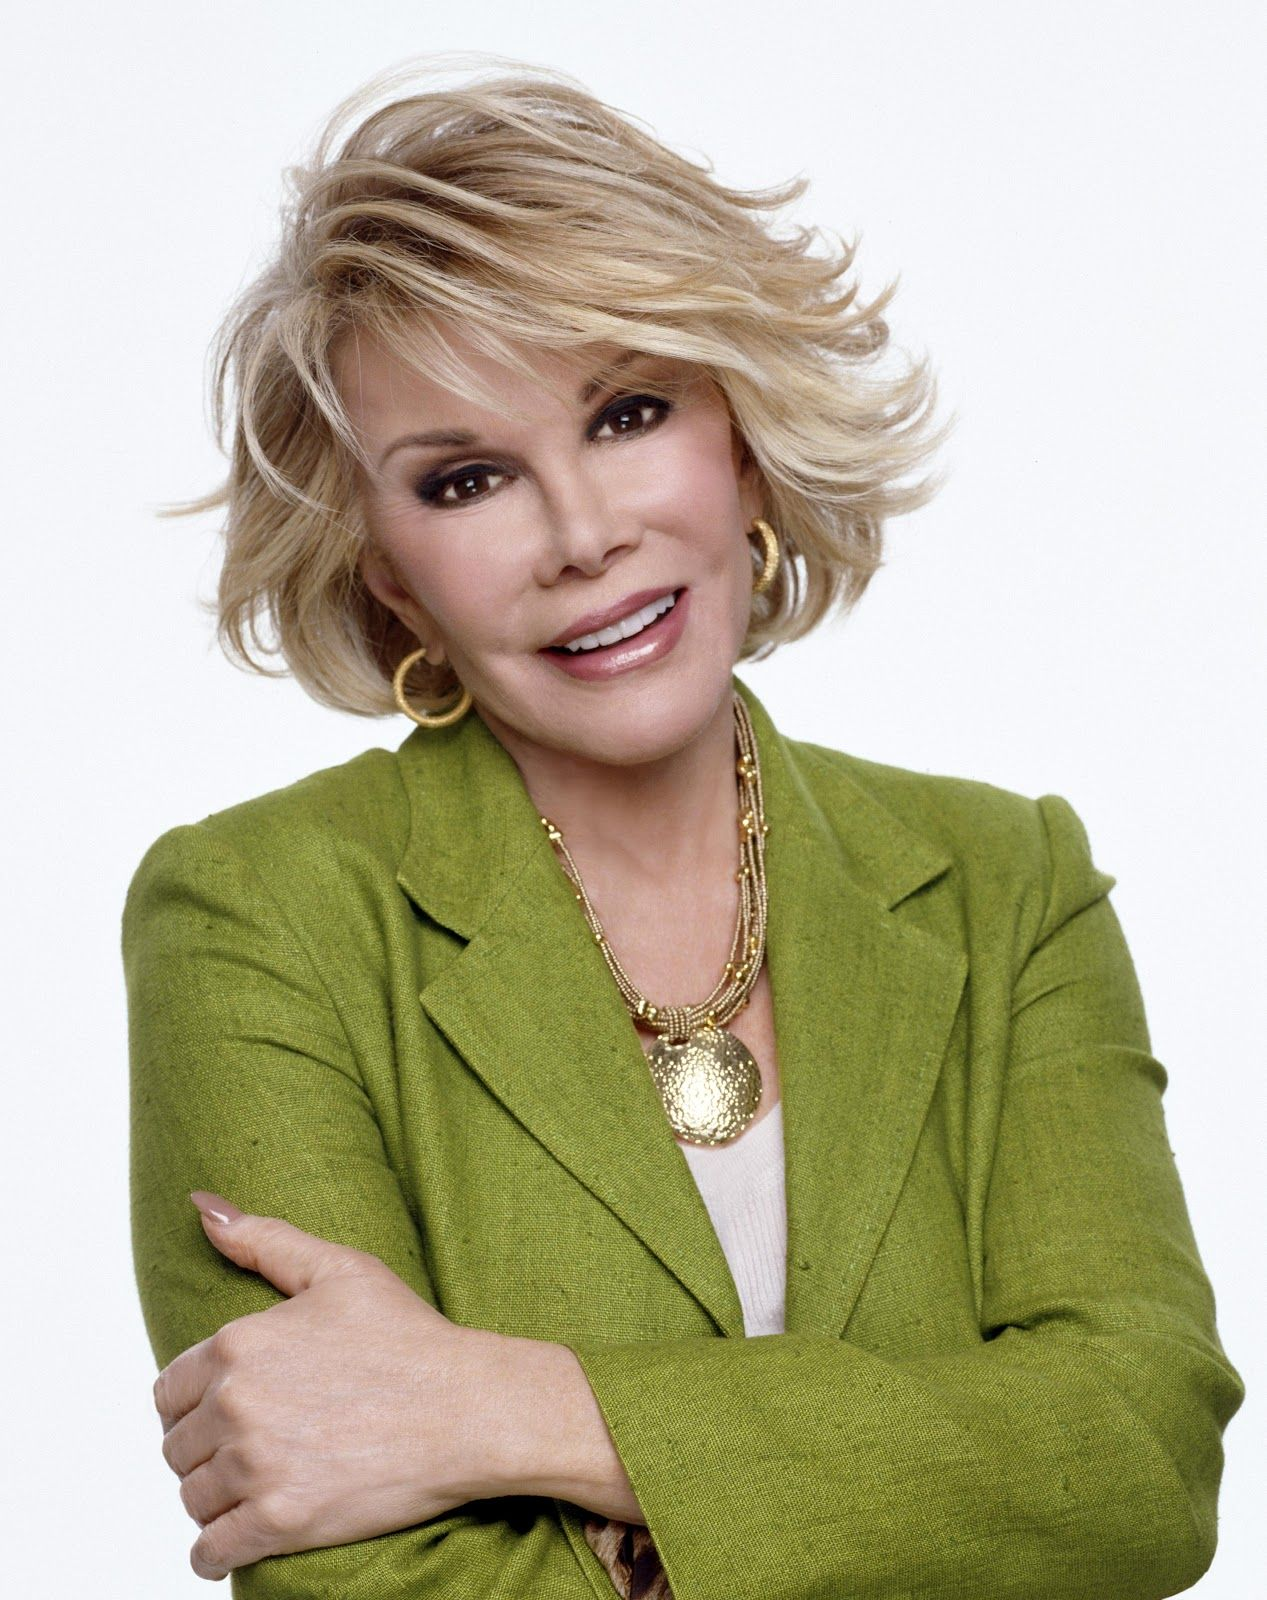 Funny Lady Joan Rivers I Think I Should Have My Hair This Way When Im Older My Hair Hair Beauty Womens Hairstyles